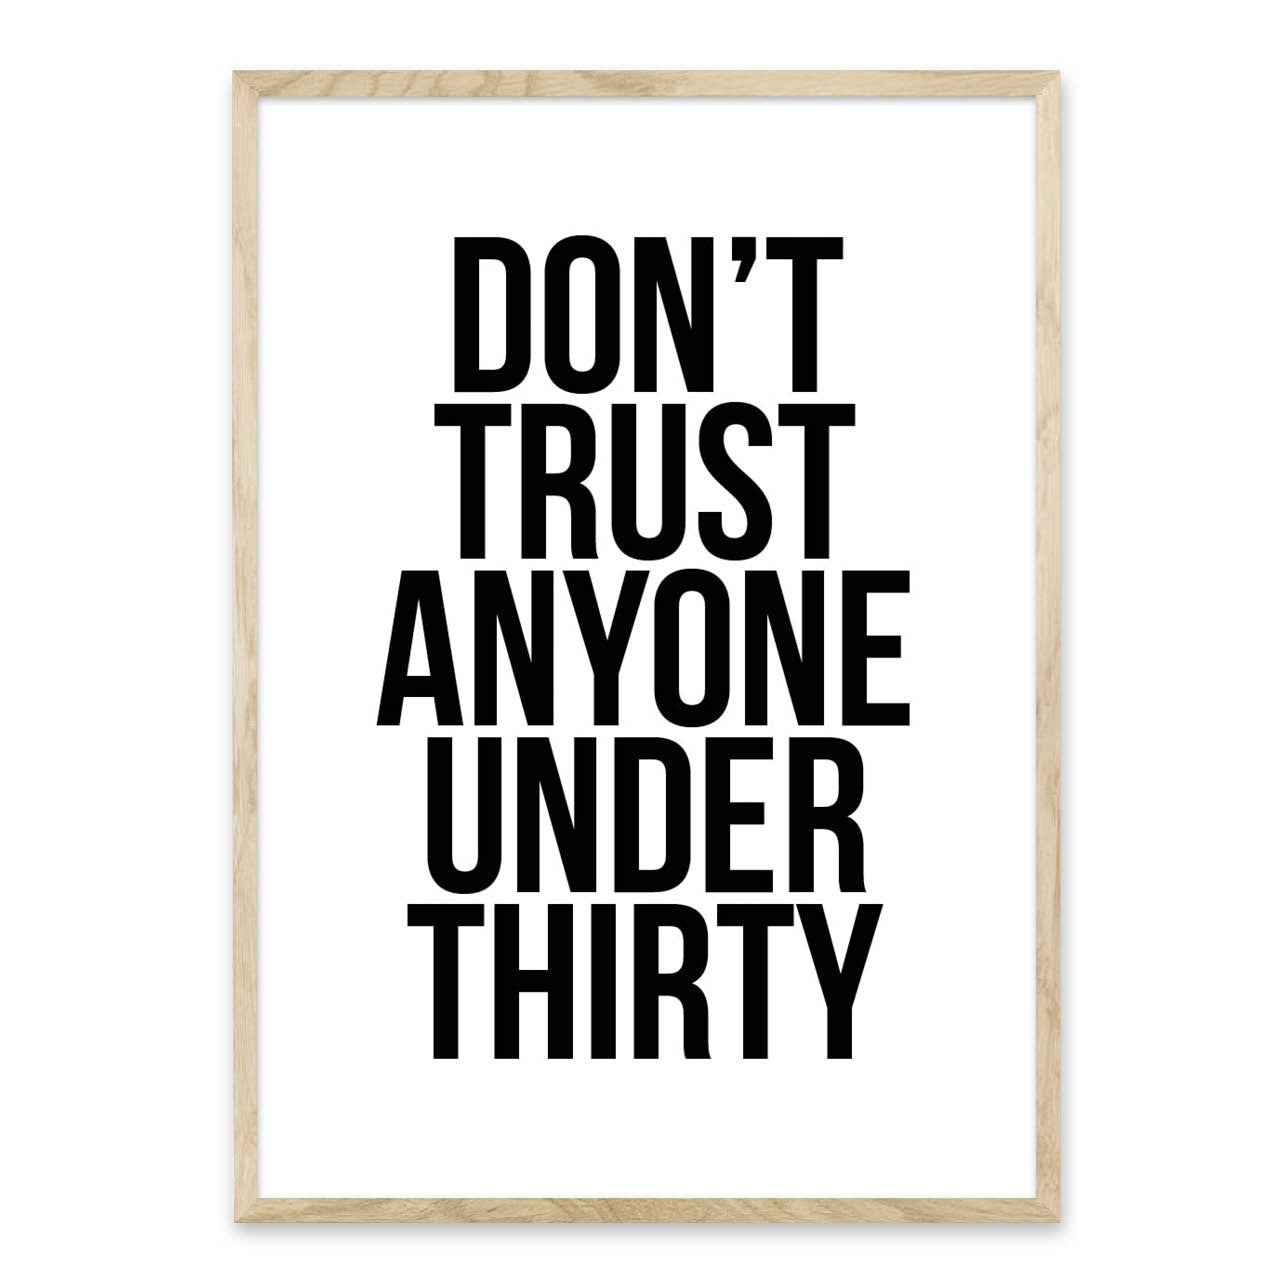 Don't trust anyone under thirty